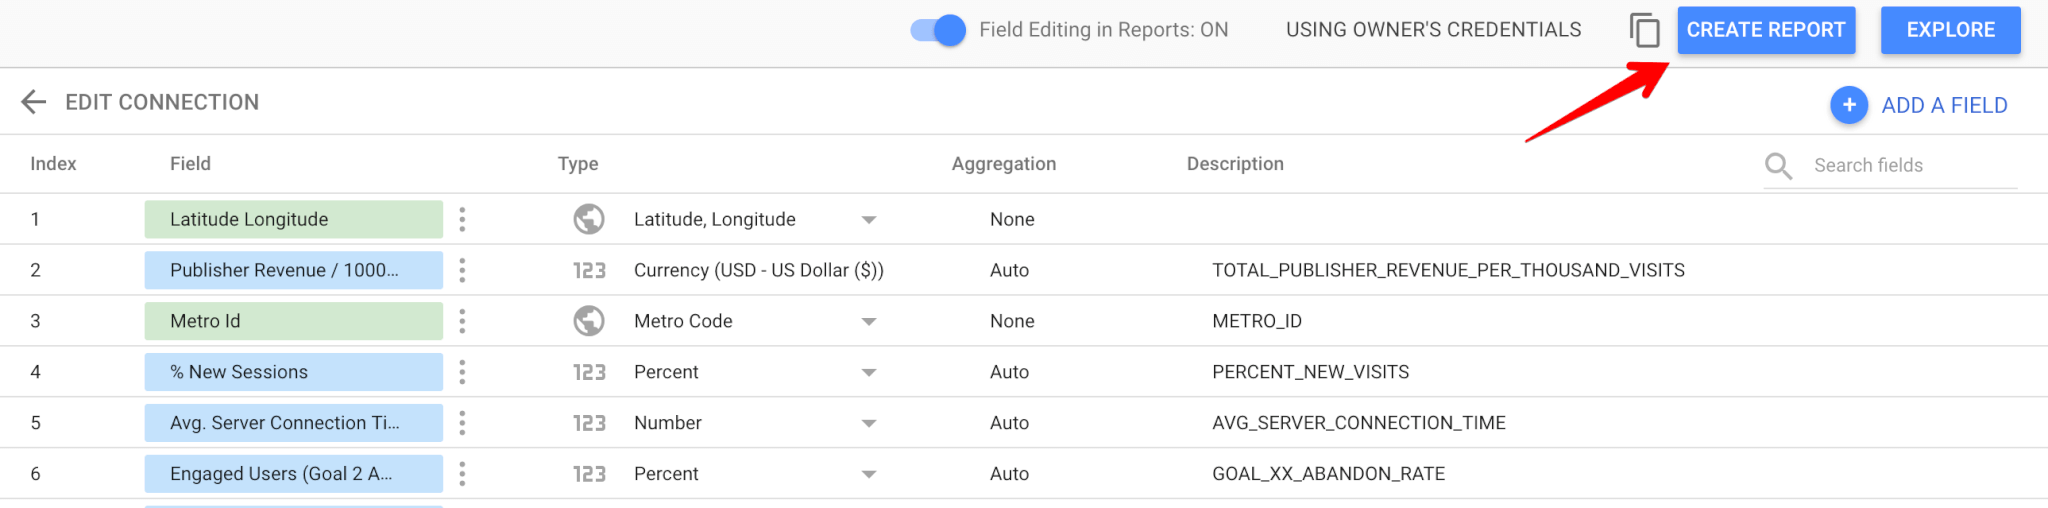 Adding fields to Google Data Studio report